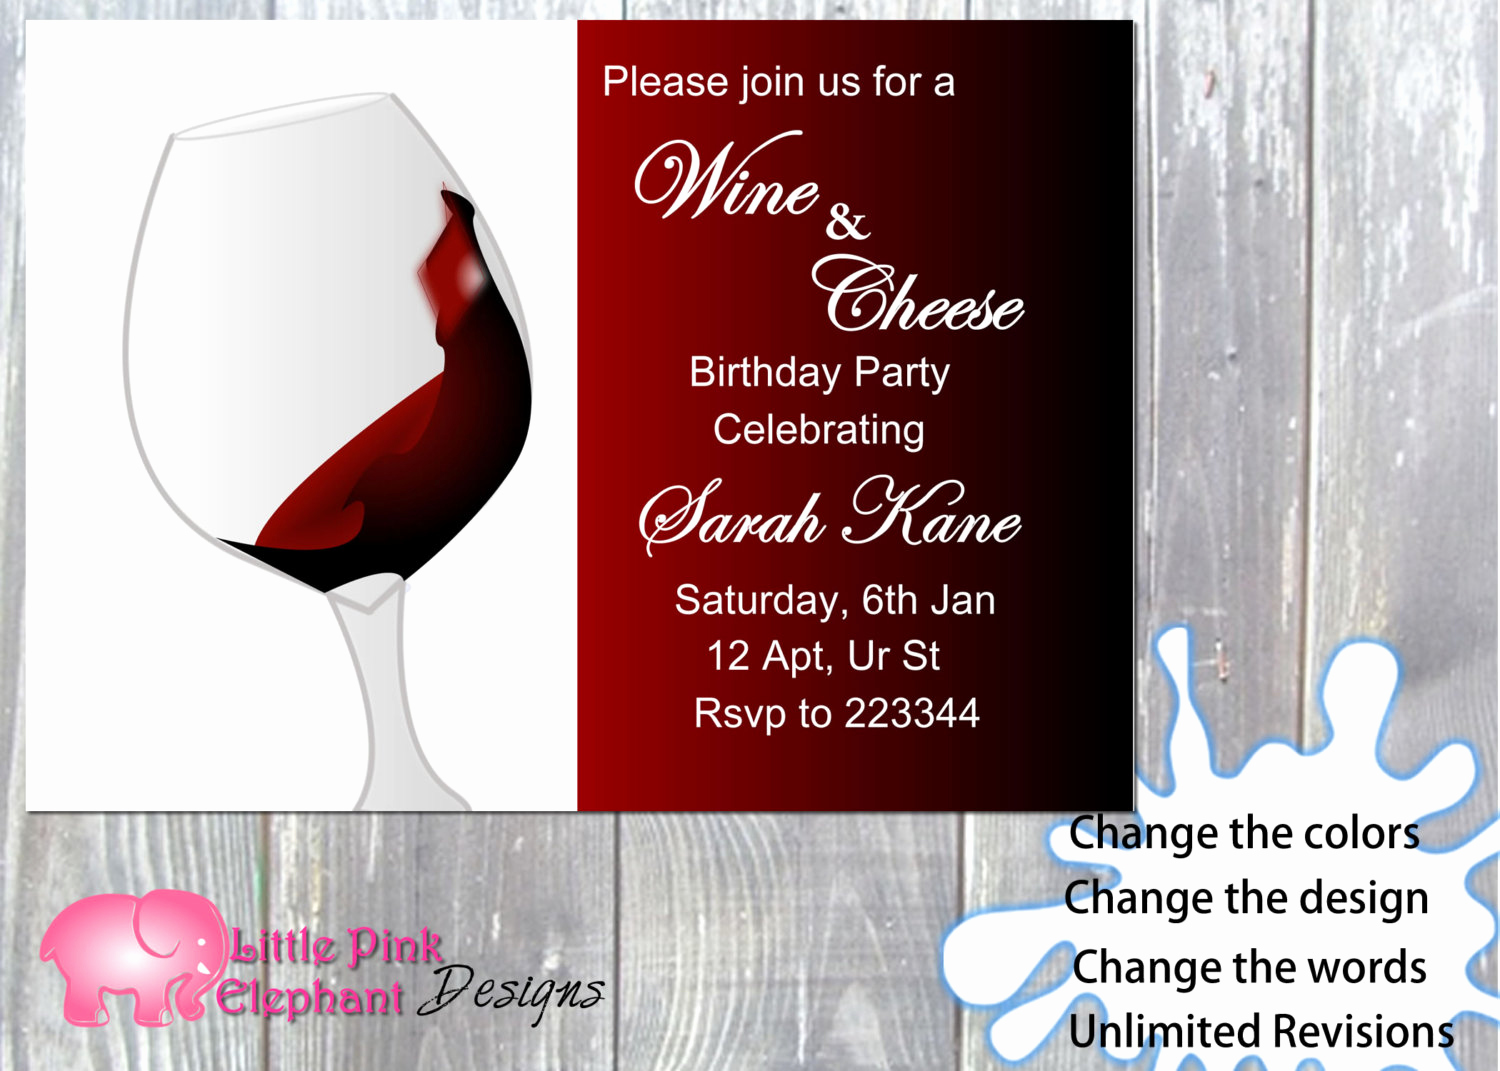 Wine and Cheese Invitation Lovely Wine and Cheese Party Invitation Wine and Cheese Invite Wine